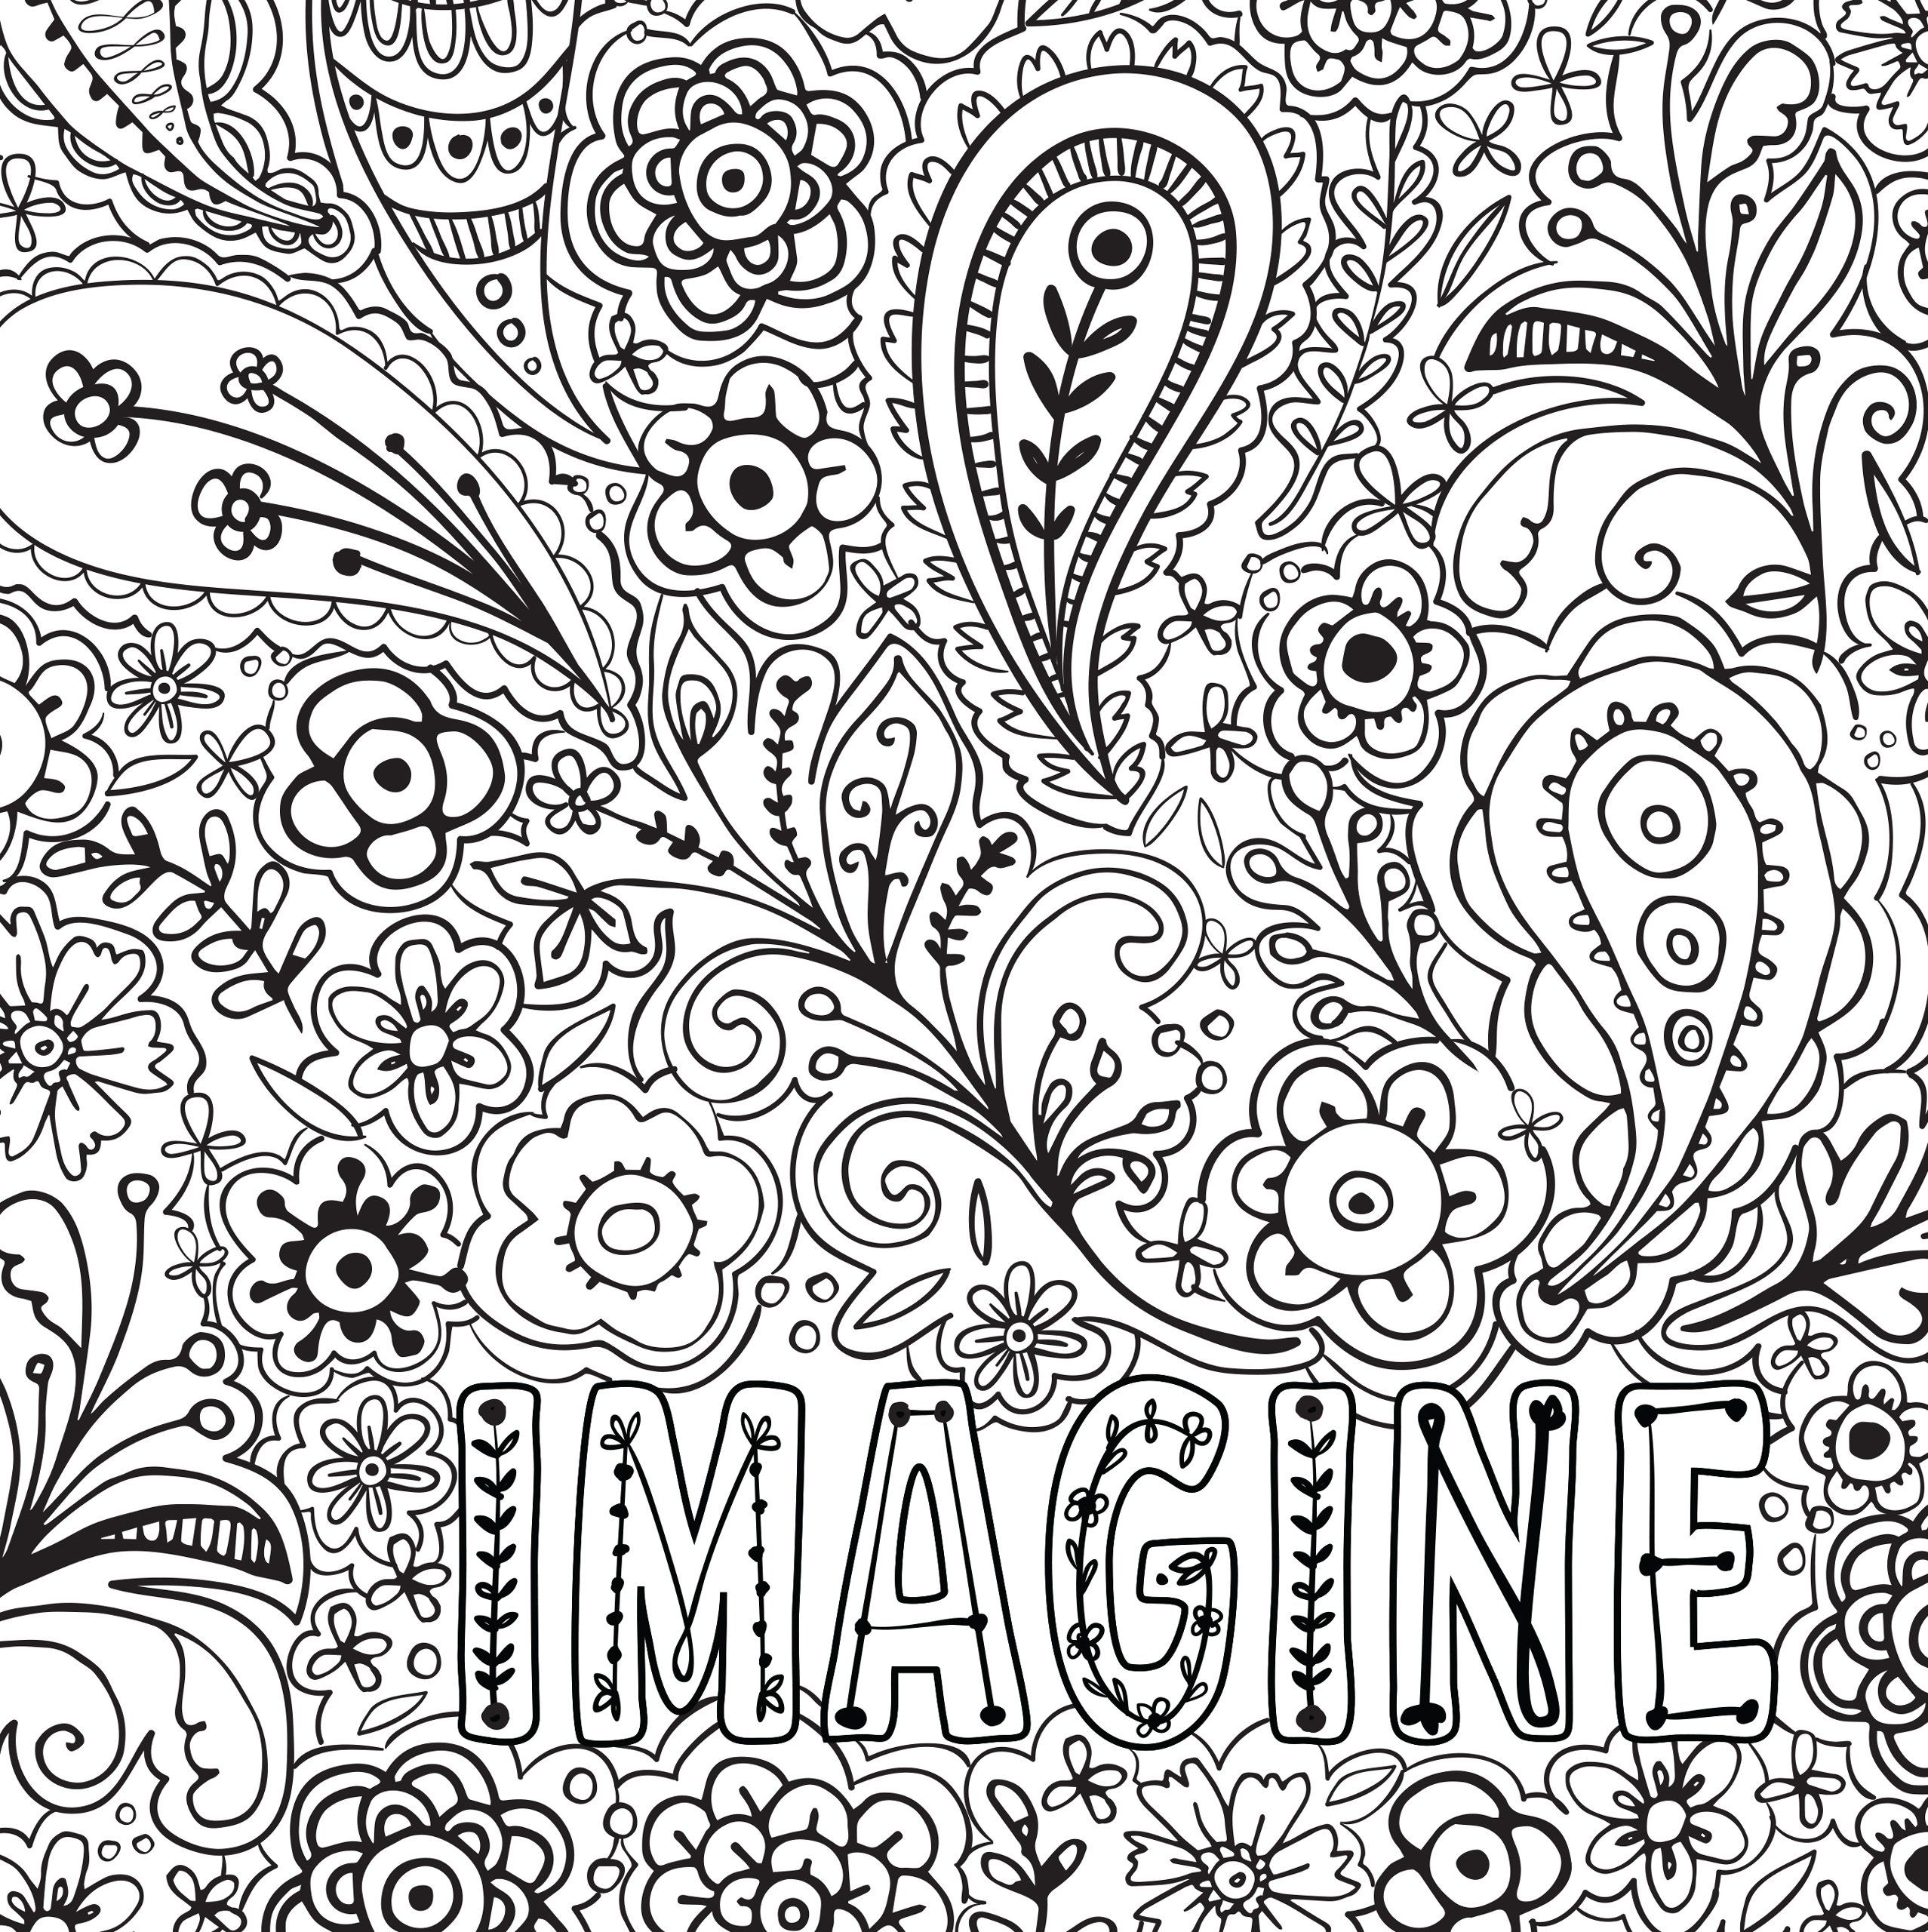 Pin on Coloring pictures--words and saying